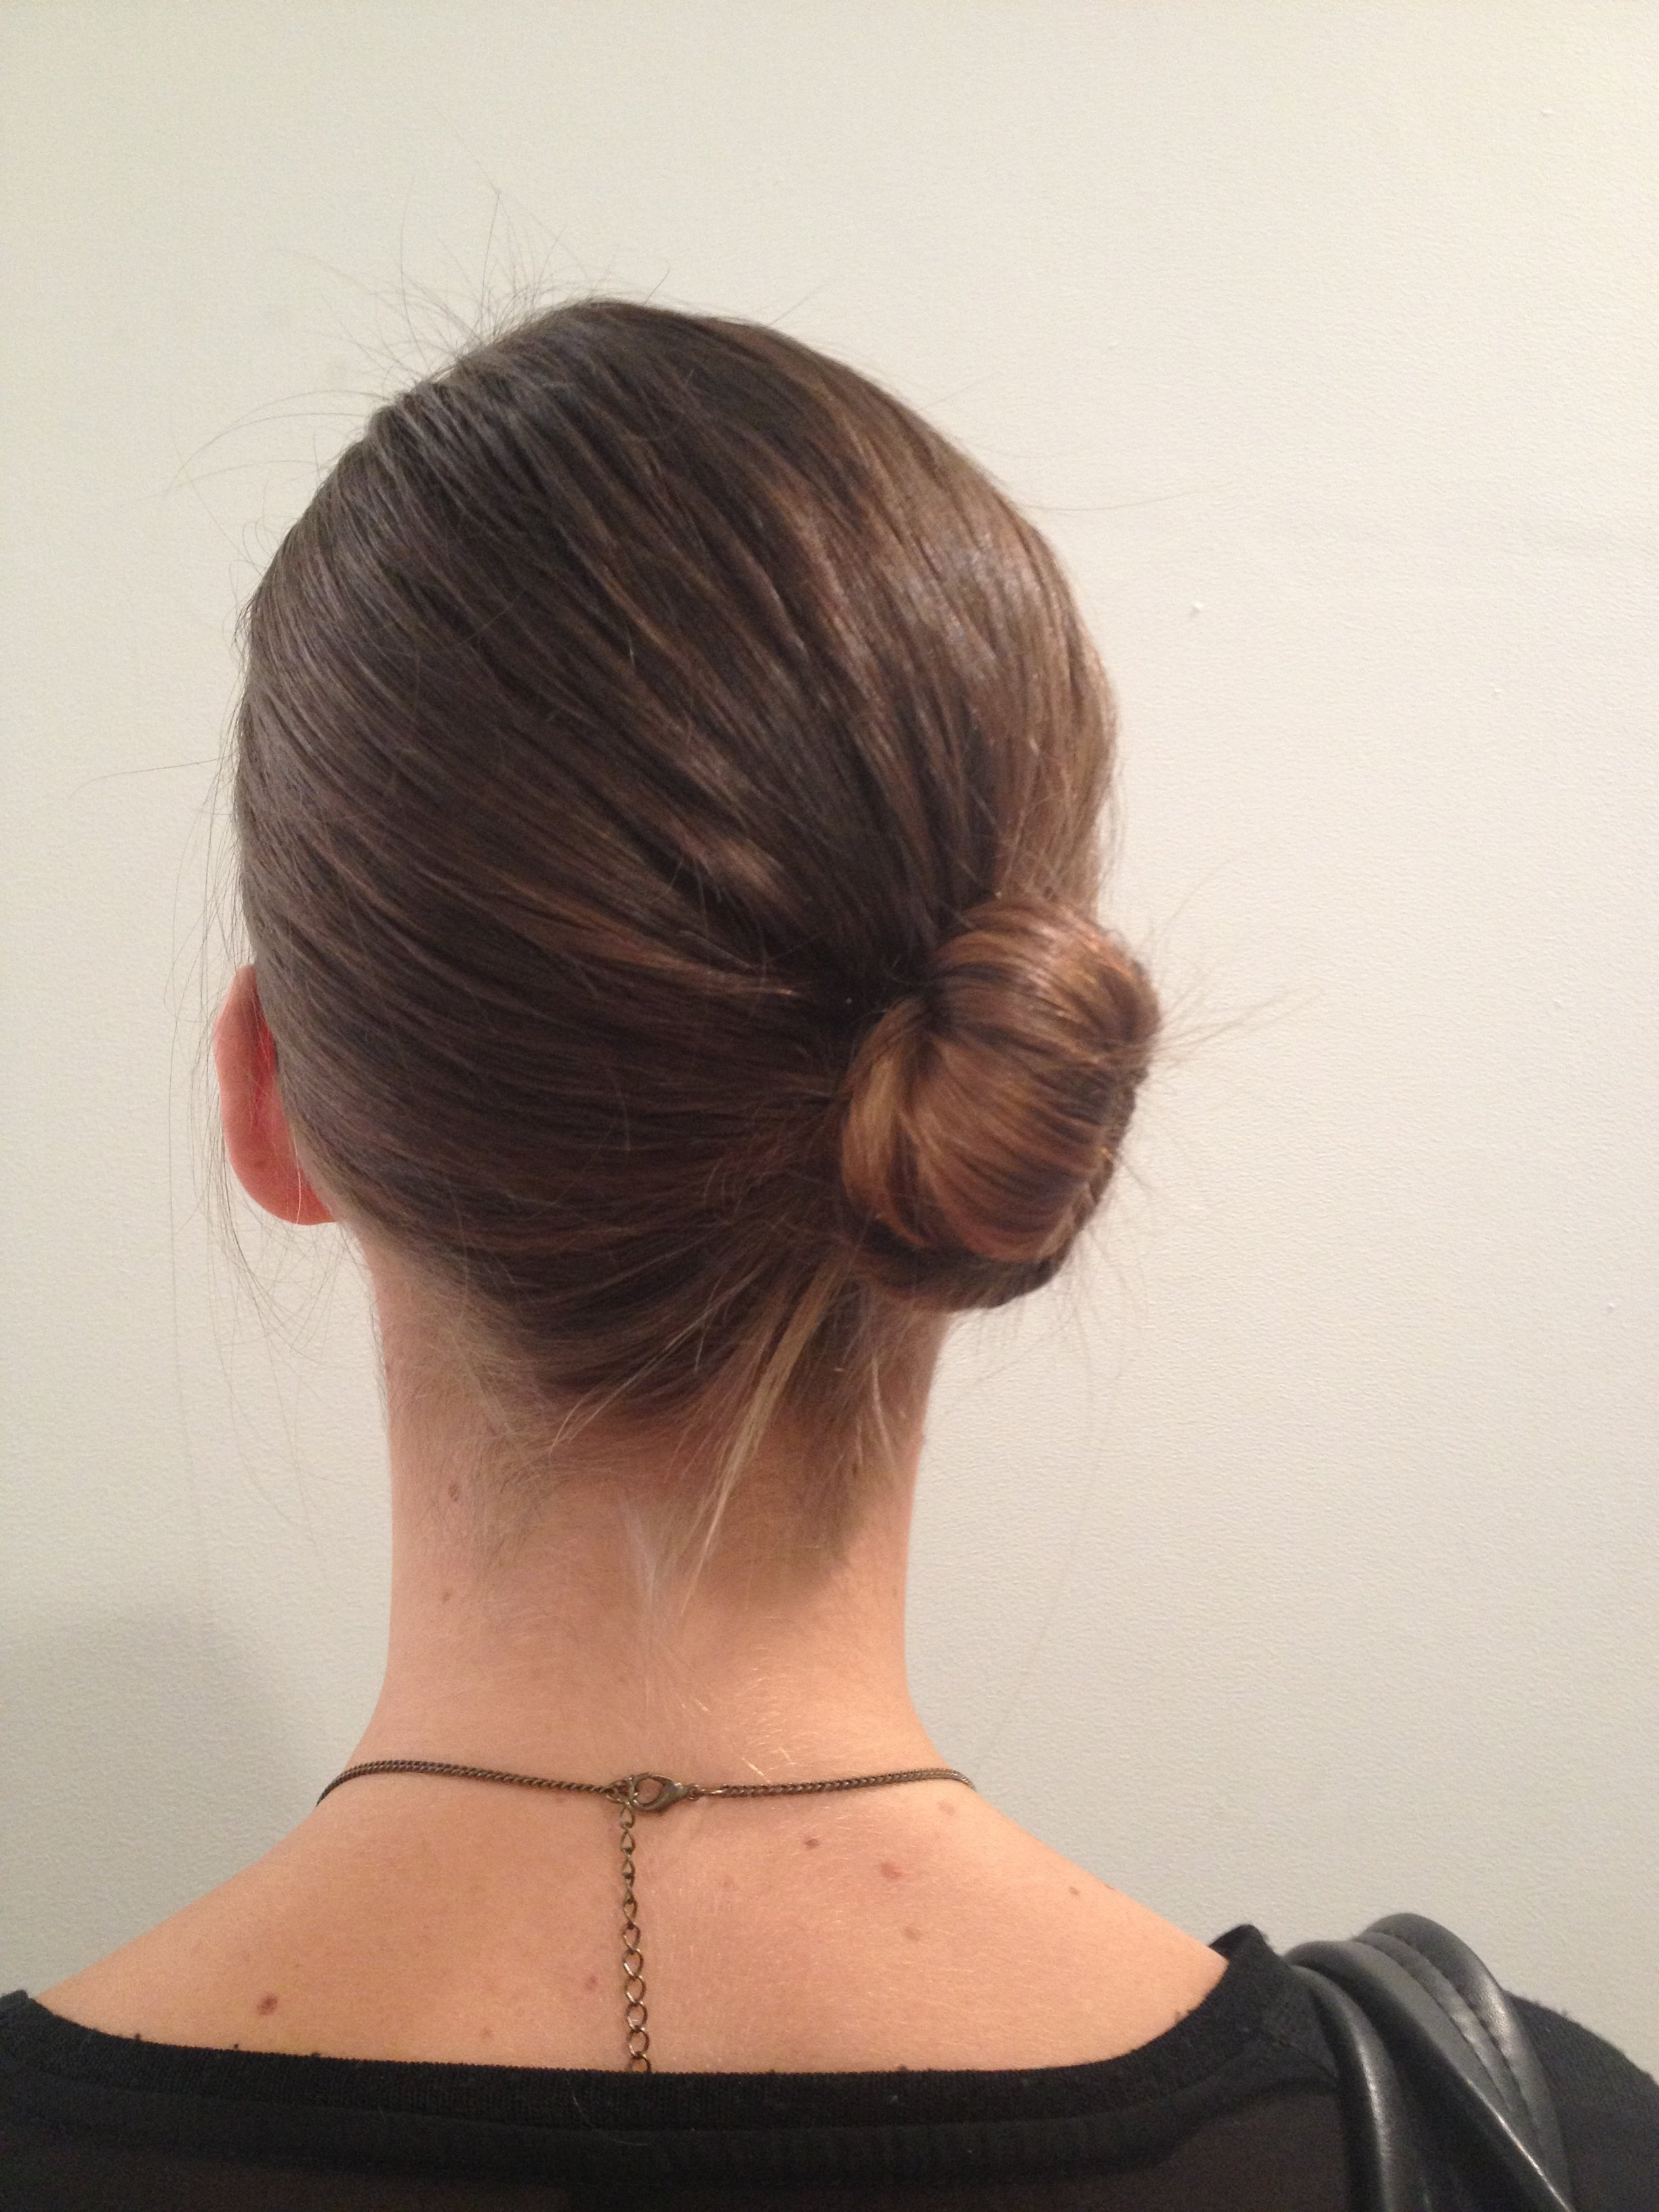 Low chignon from back